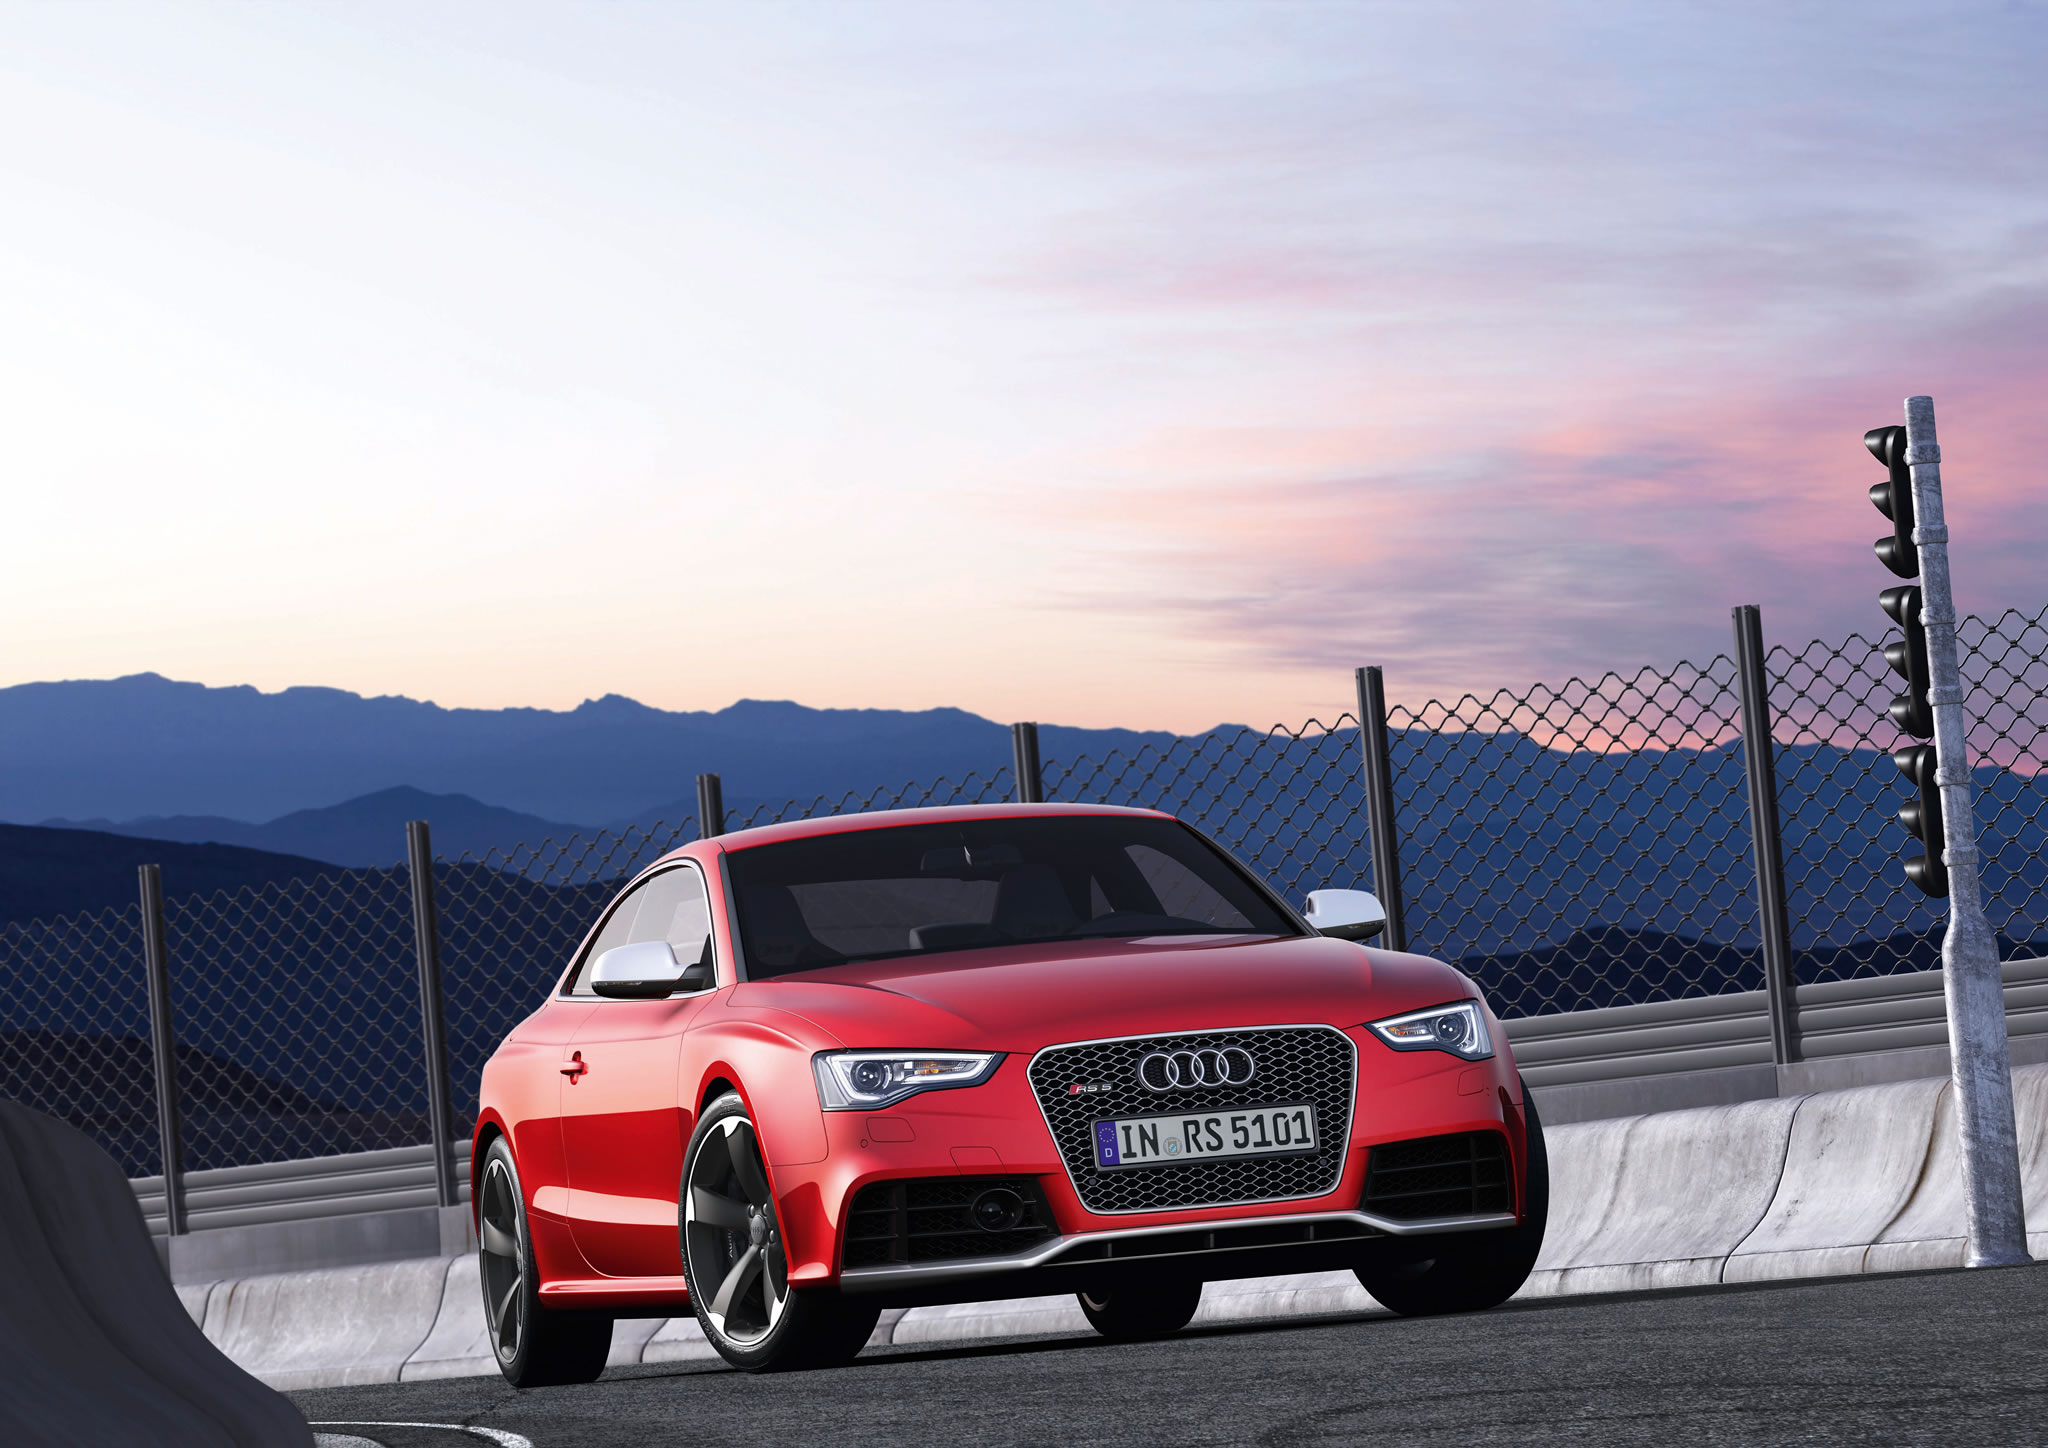 2014 audi rs 5 coupe front photo misano red color sunset size 2048 x 1448 nr 4 49. Black Bedroom Furniture Sets. Home Design Ideas